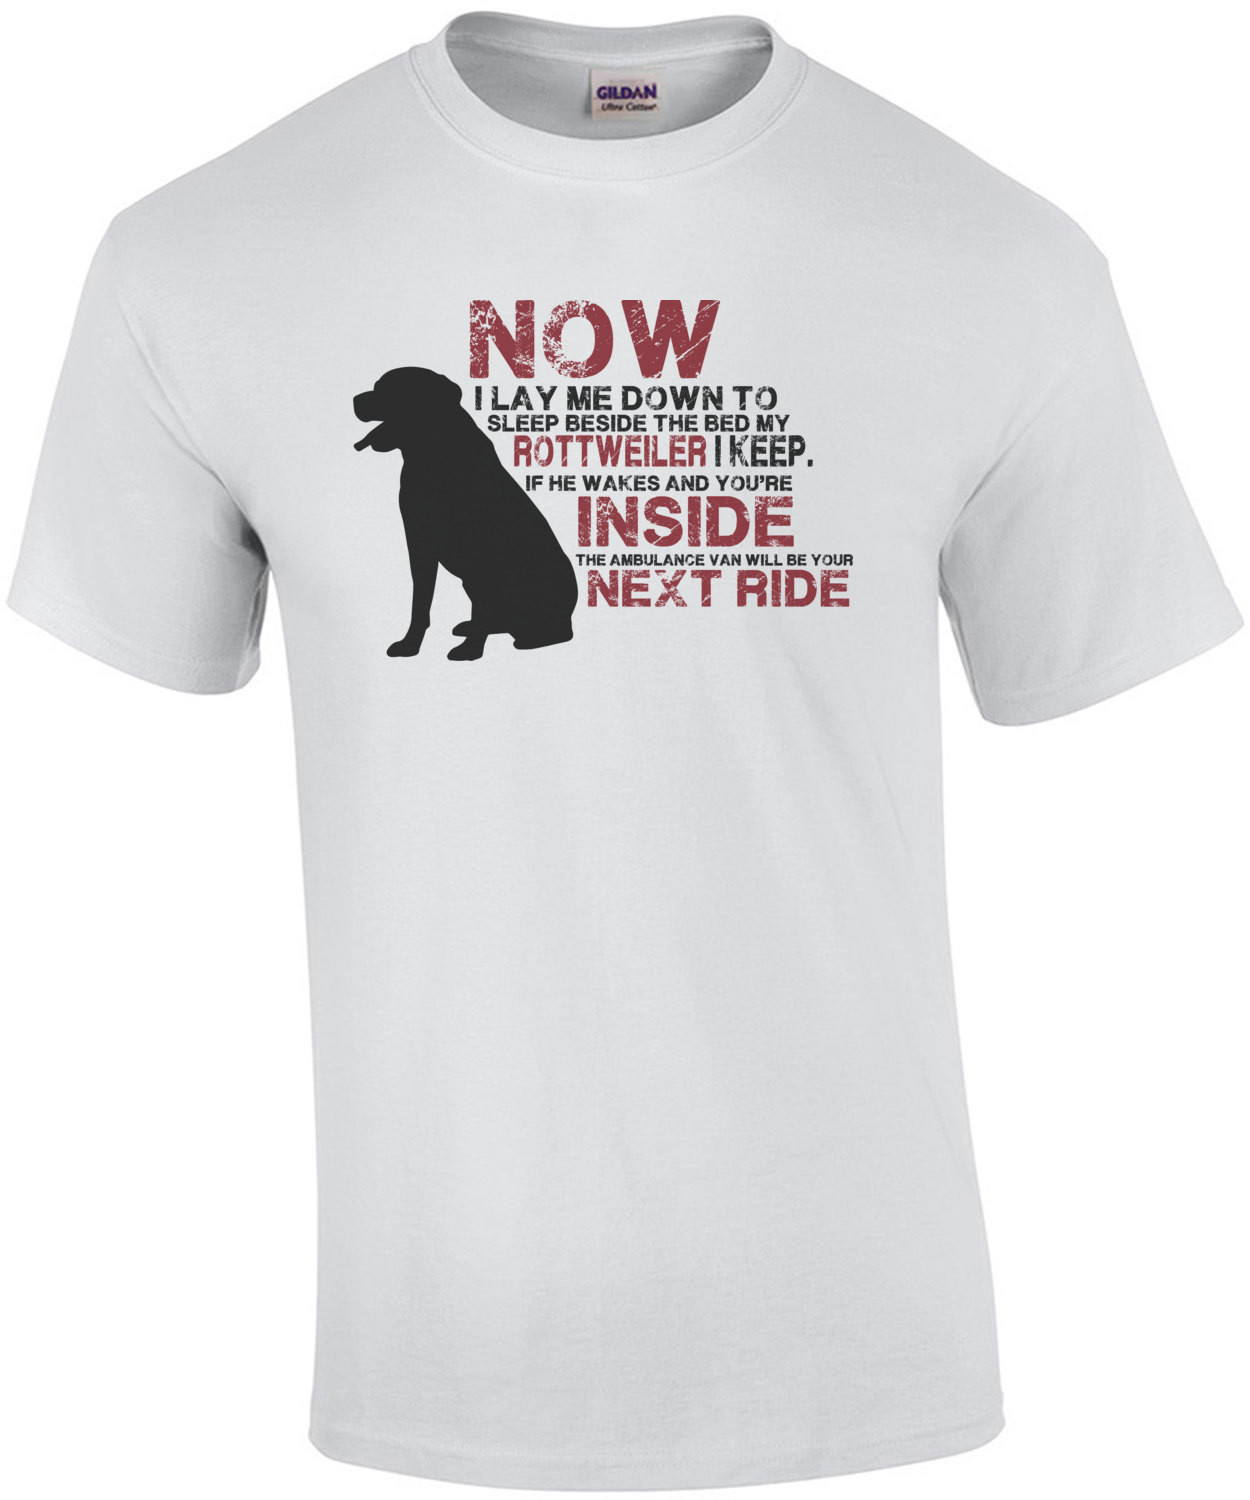 Now I lay me down to sleep beside my bed my rottweiler I keep. Rottweiler t-shirt